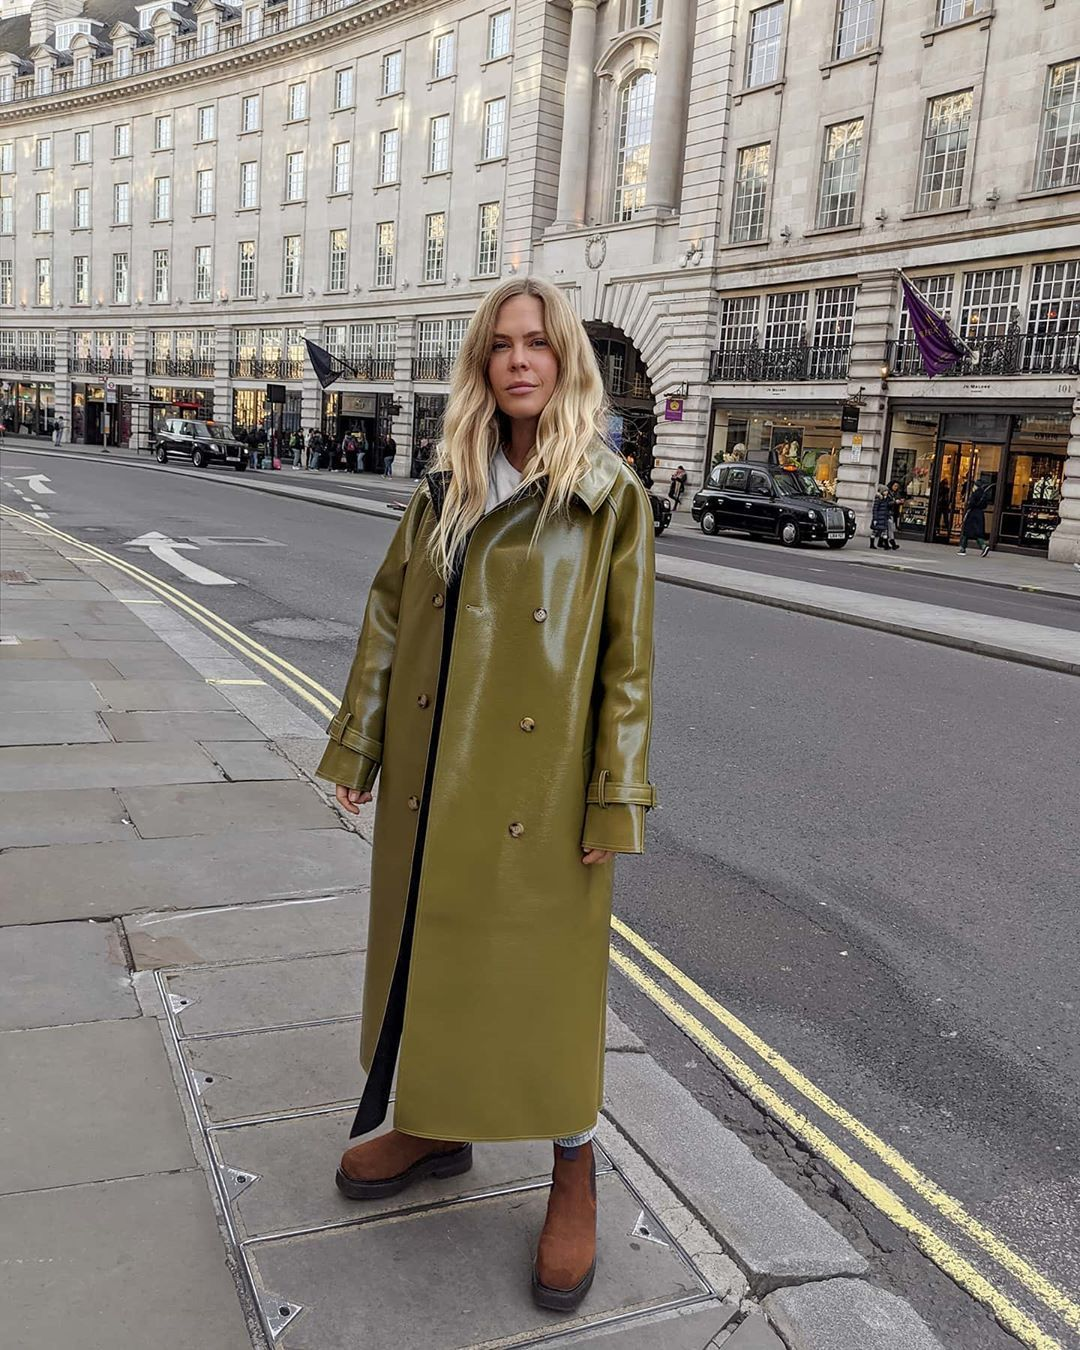 jessie-bush-oversized-double-breasted-glossed-faux-textured-leather-trench-coat-instagram